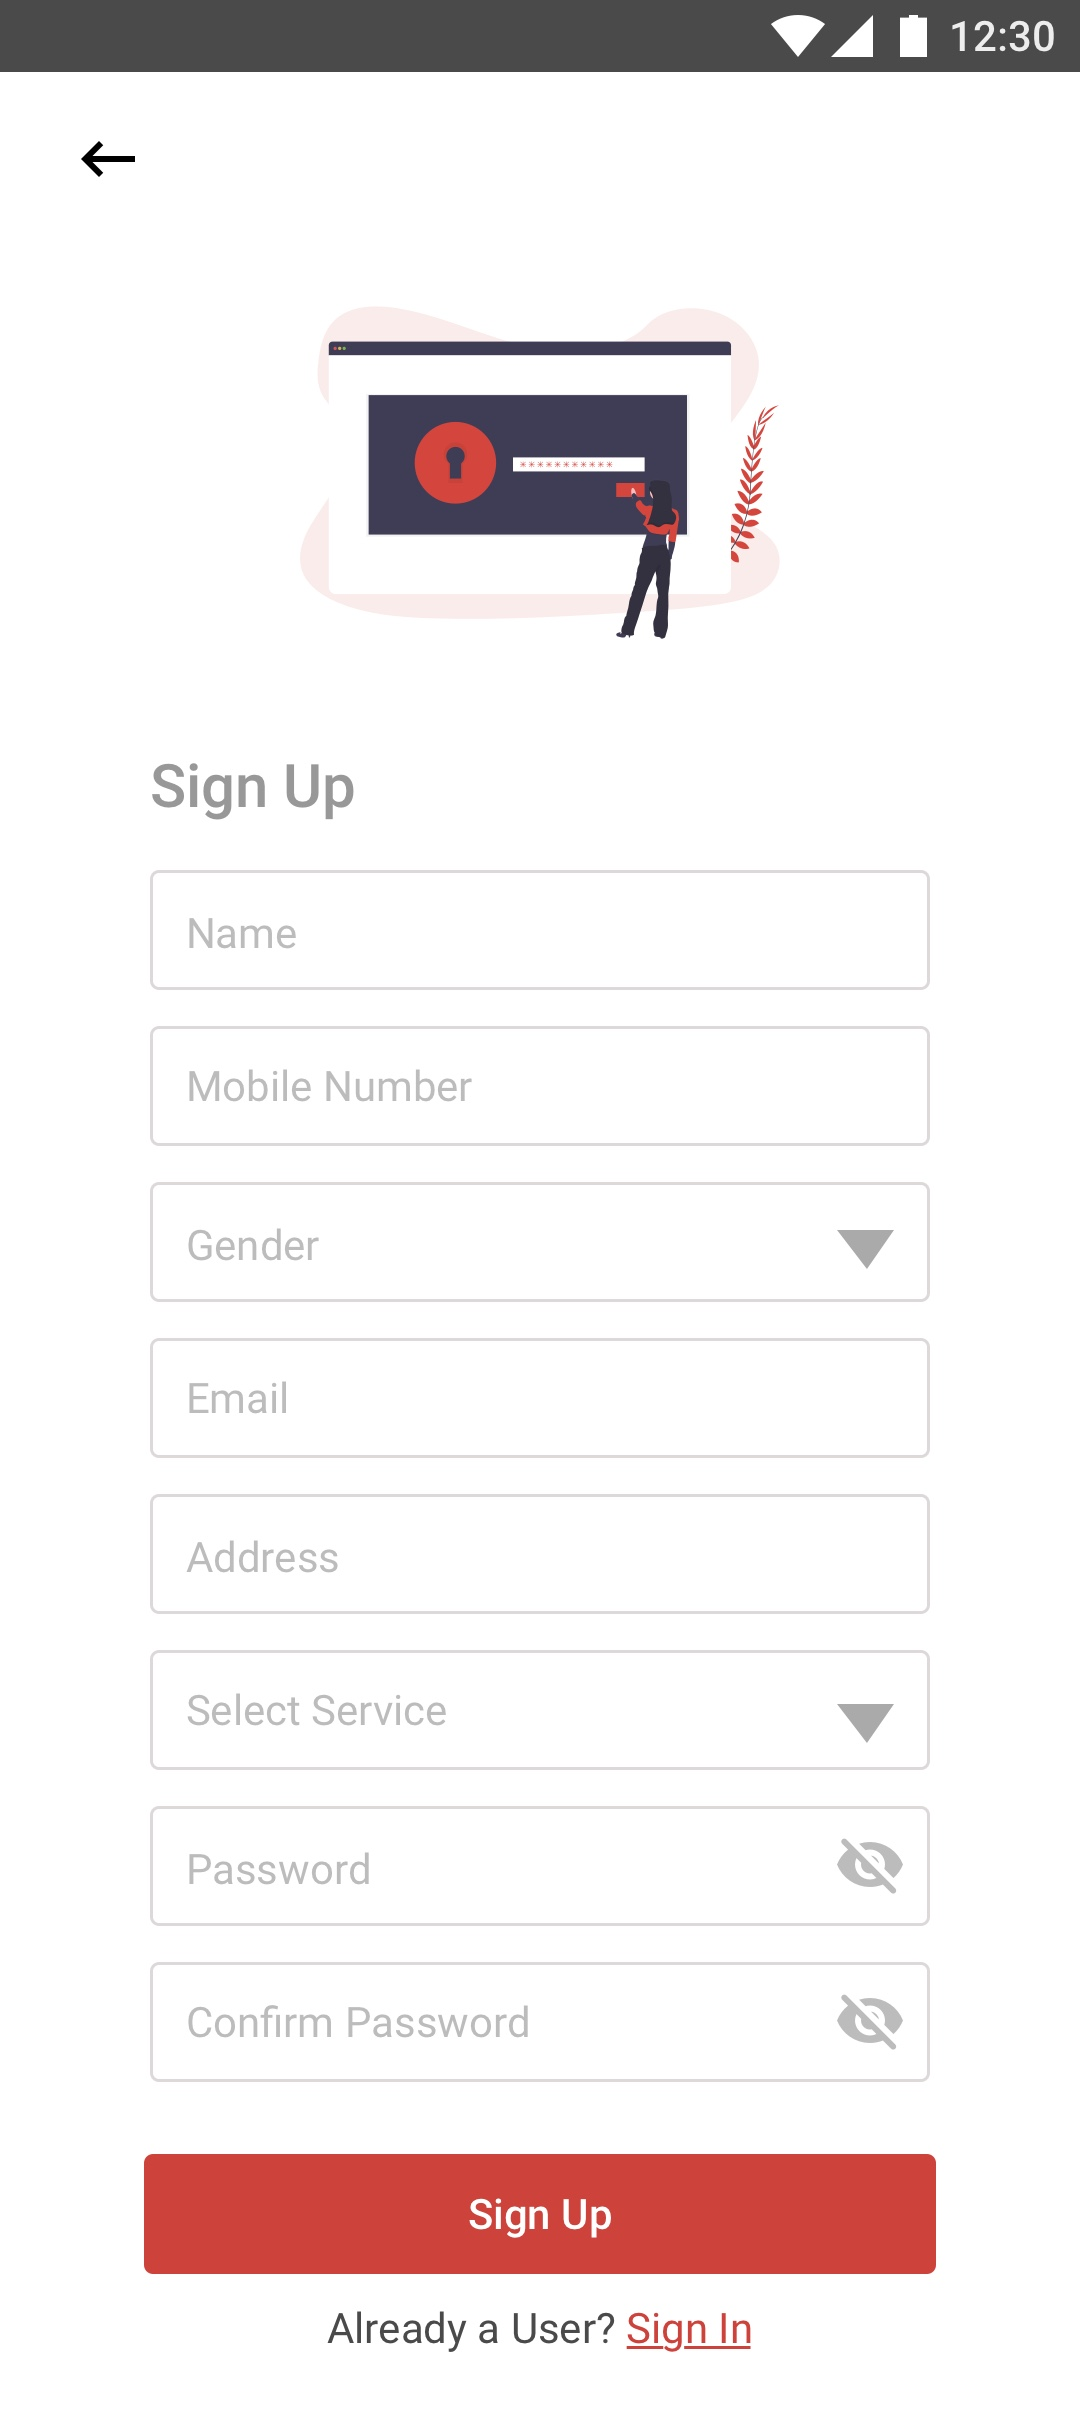 Sign Up Screen of app